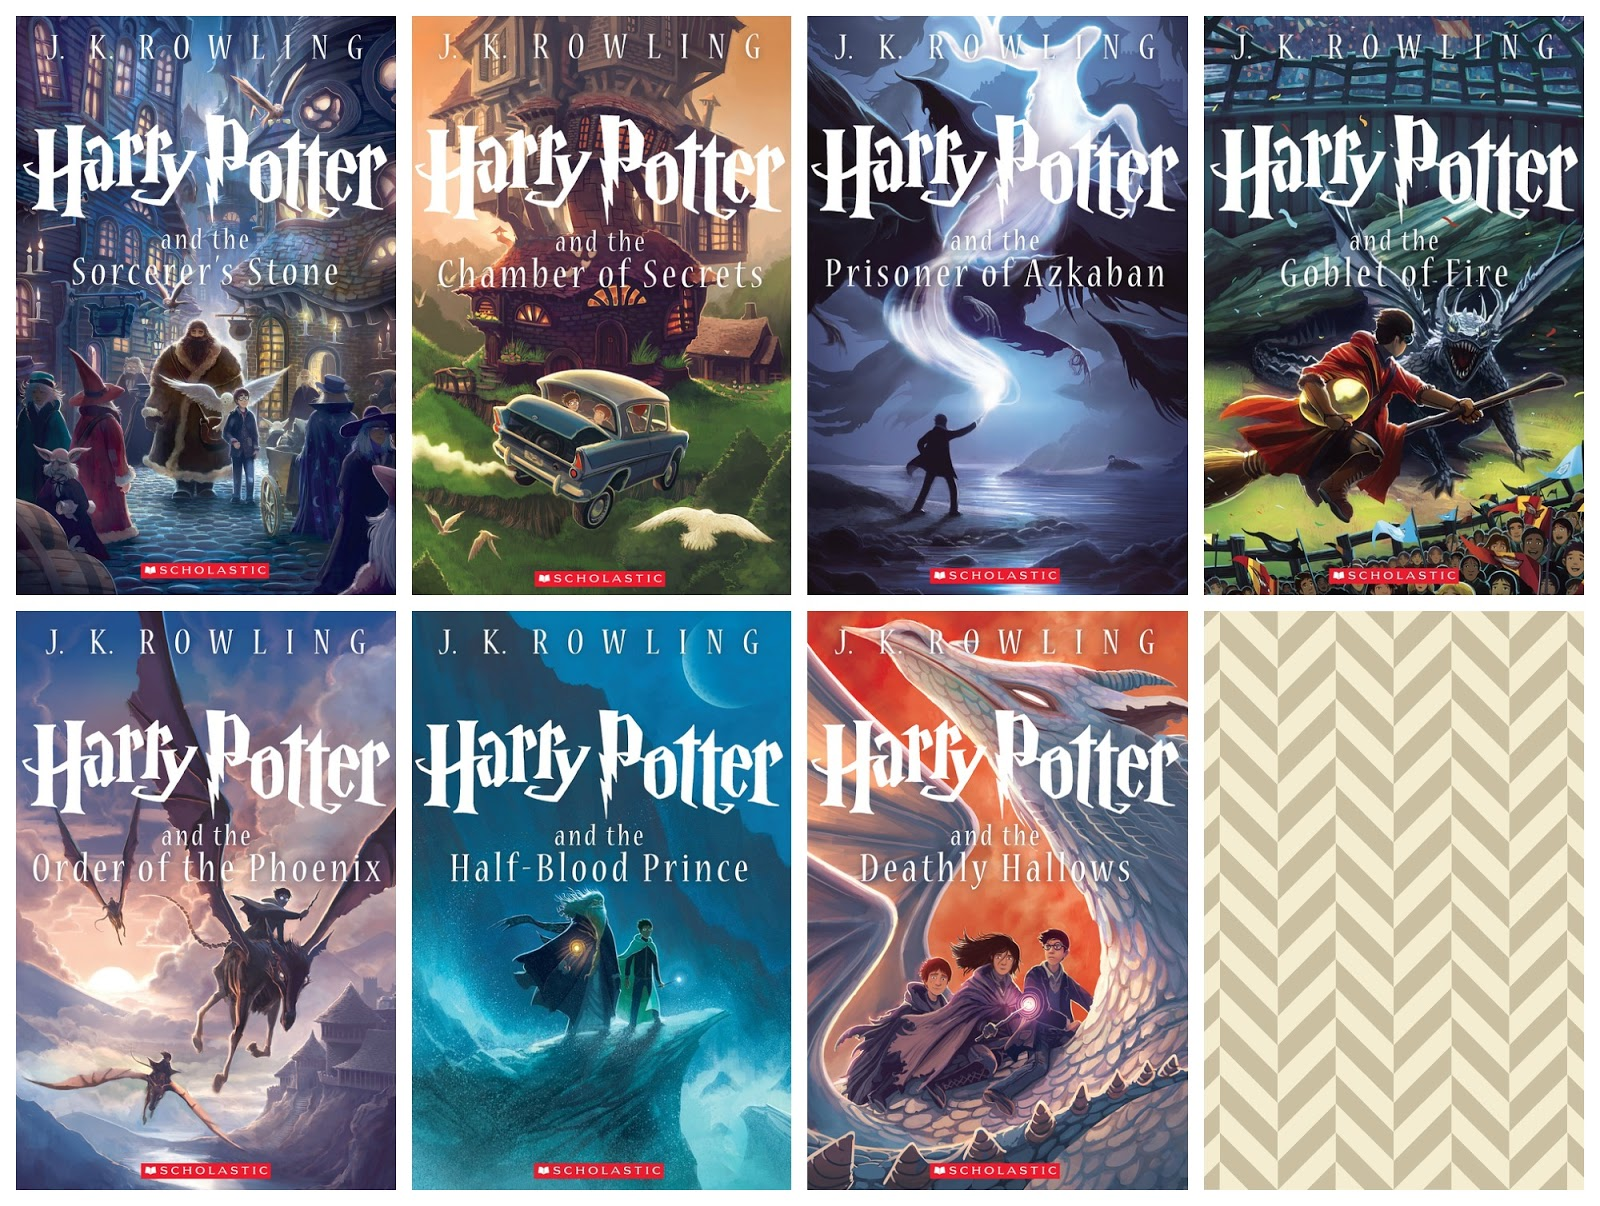 Harry Potter Book Covers Uk Vs Us ~ A wonderful book world the beautiful covers tag